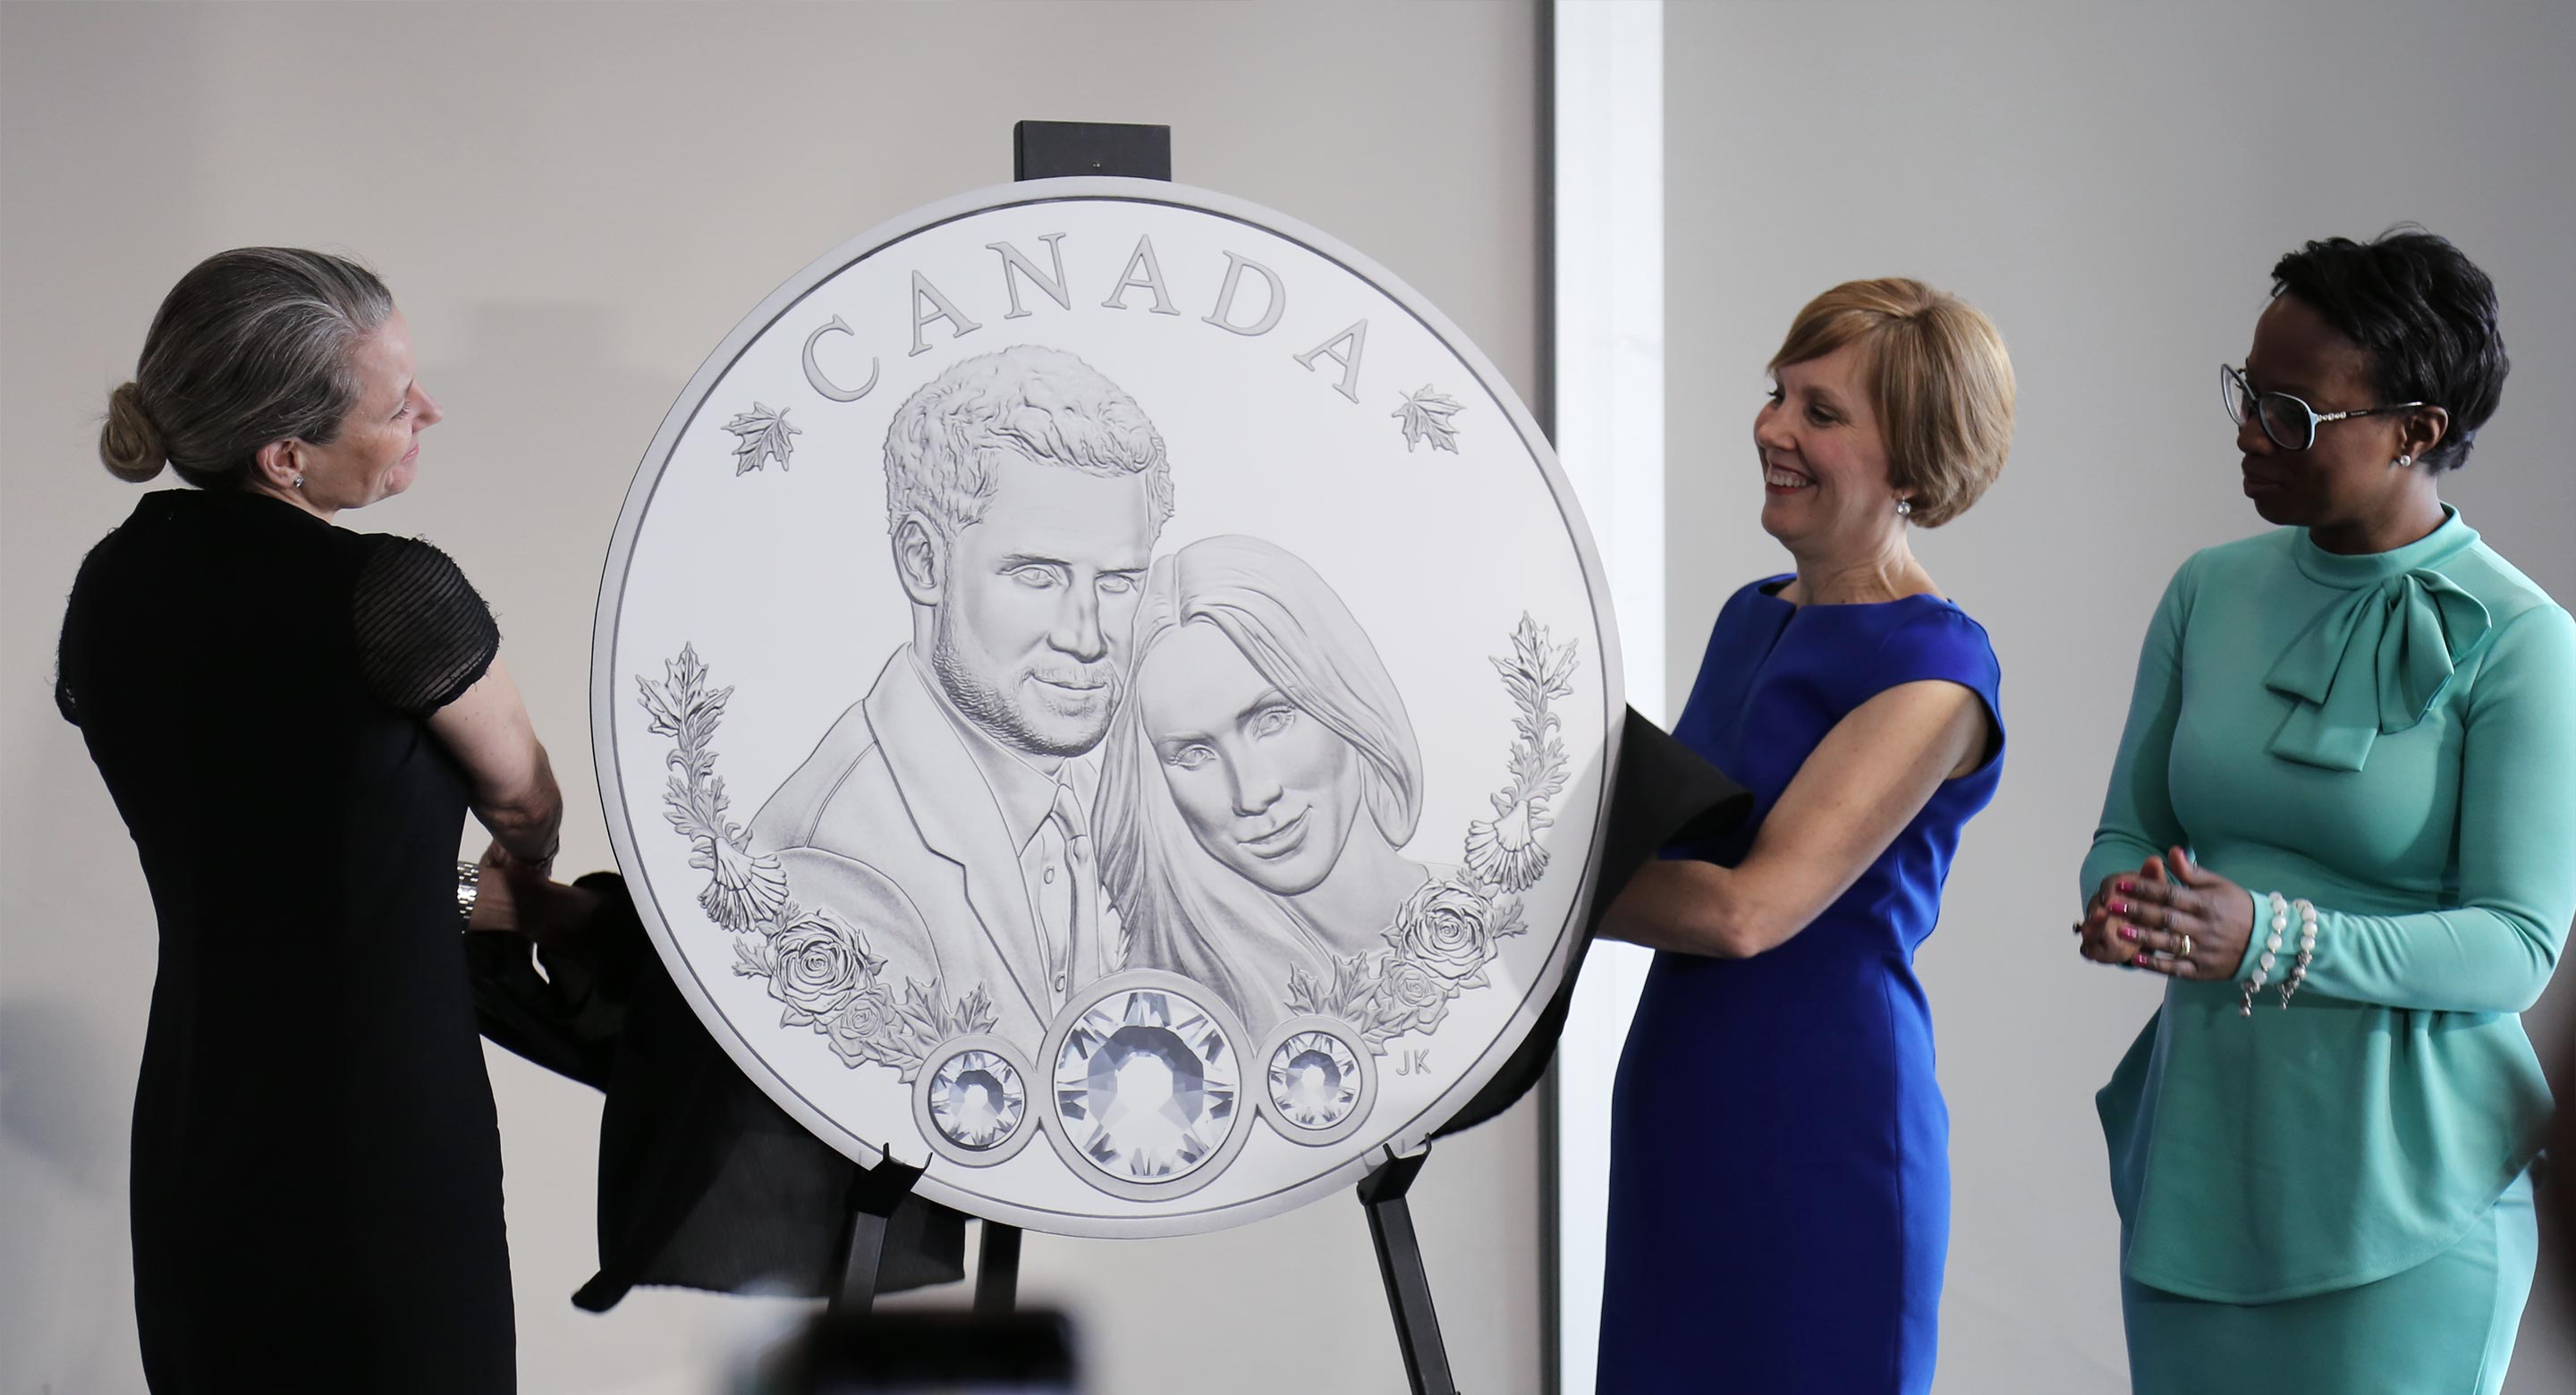 Unveiling of Prince Harry coin at CAMH